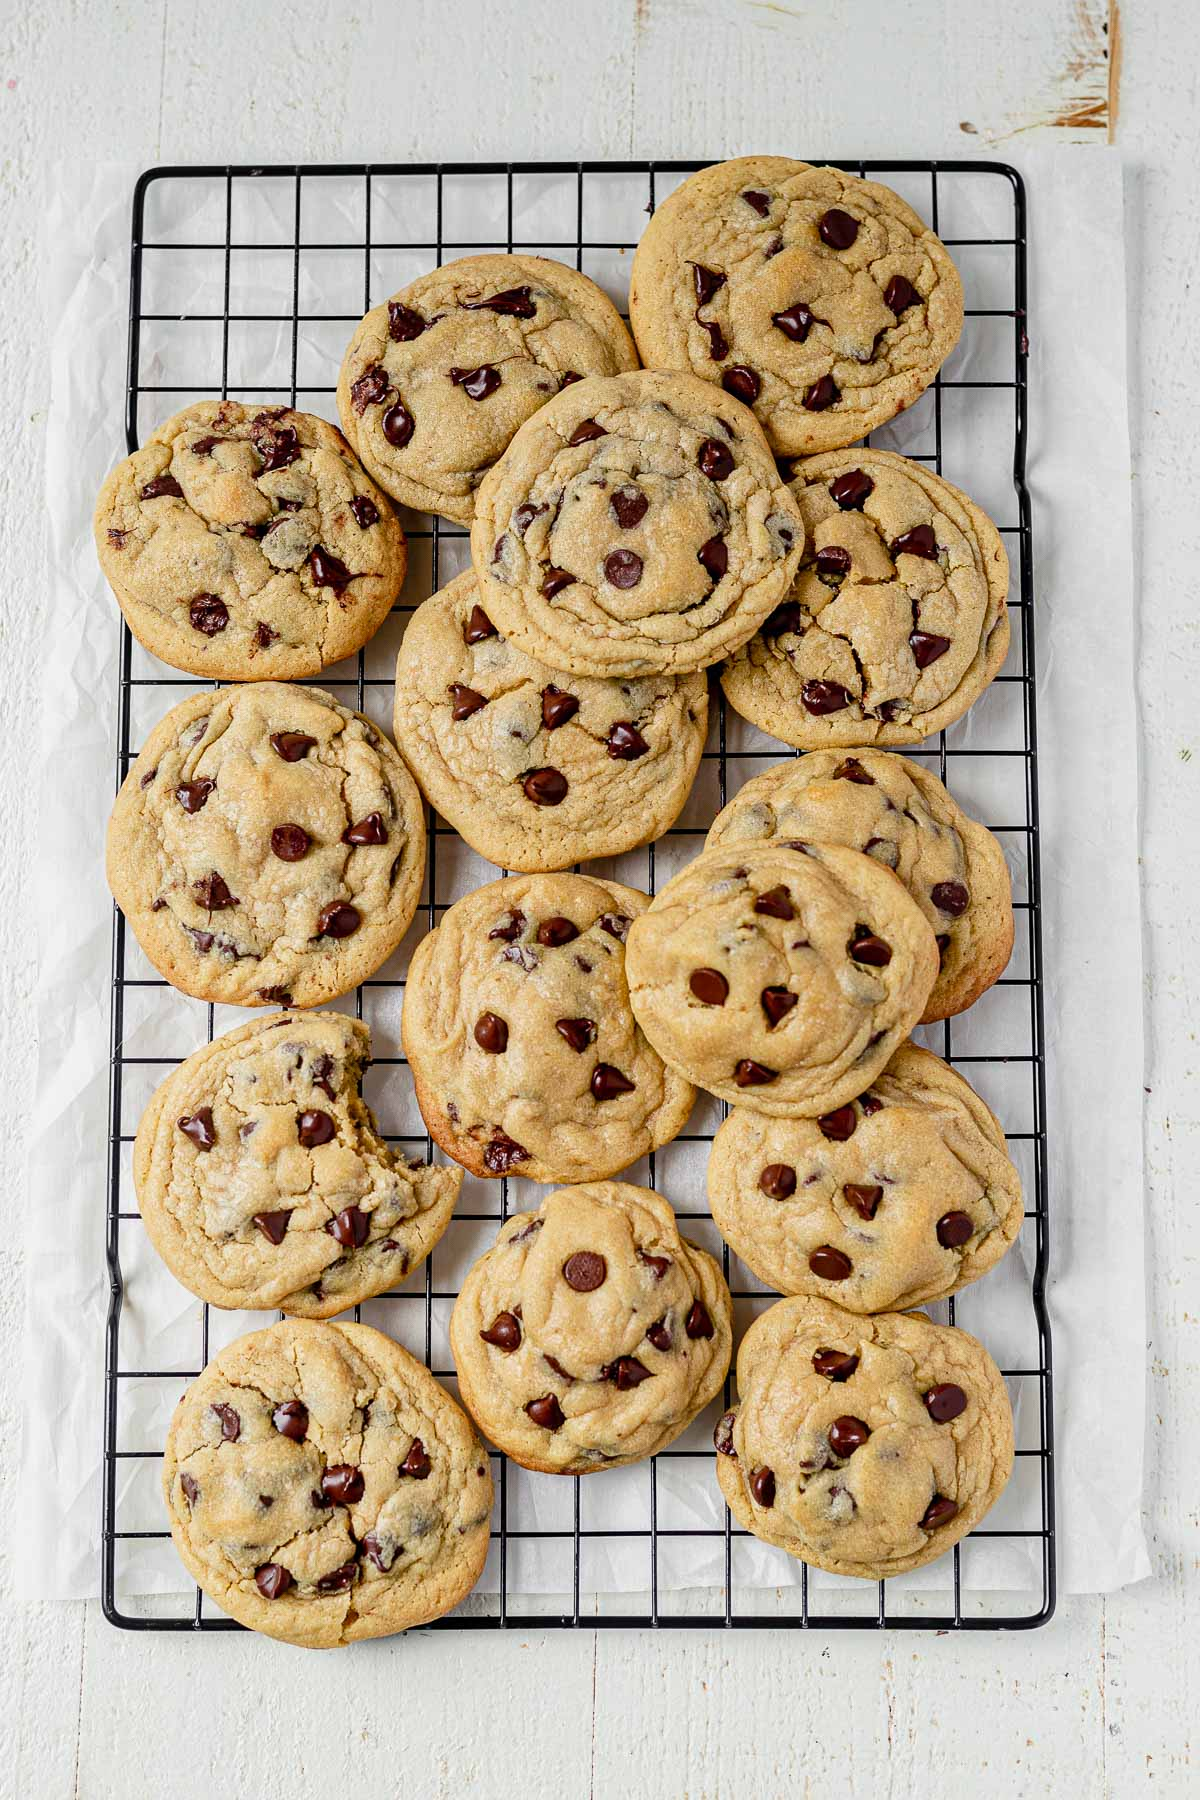 15 chocolate chip cookies made with vanilla pudding cooling on a black cooling rack